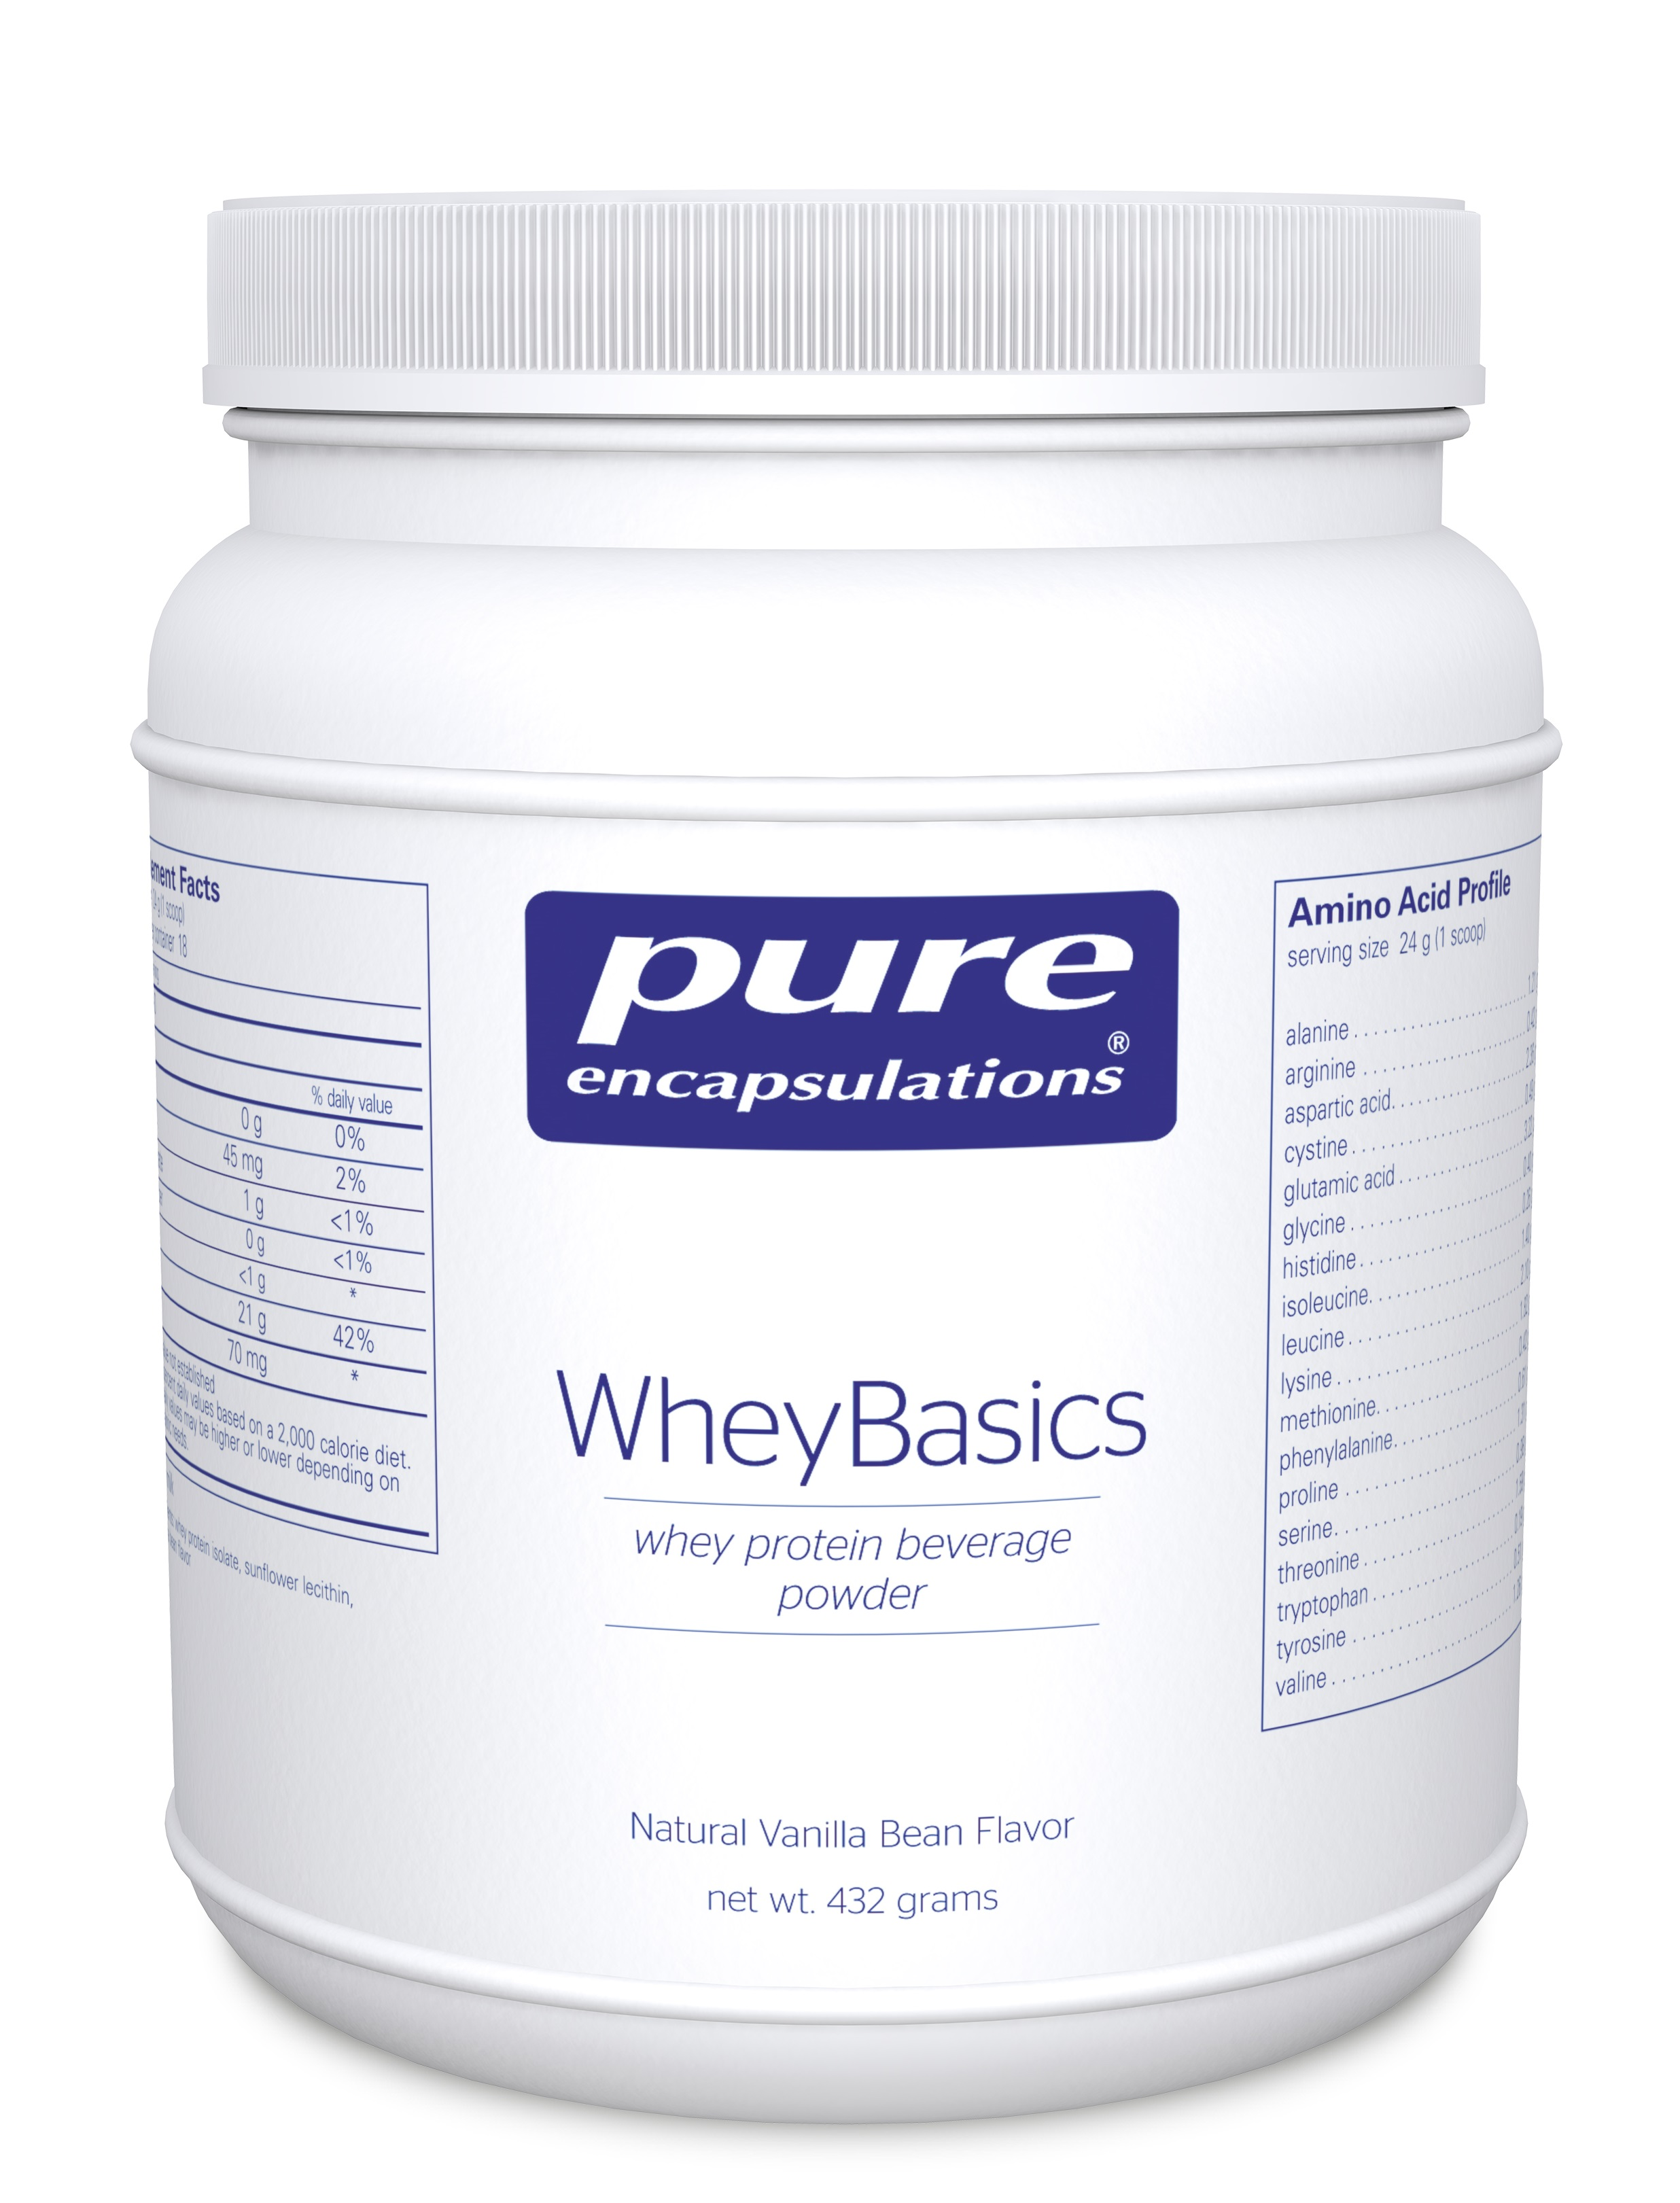 Pure Encapsulations Whey Basics Vanilla Bean flavor